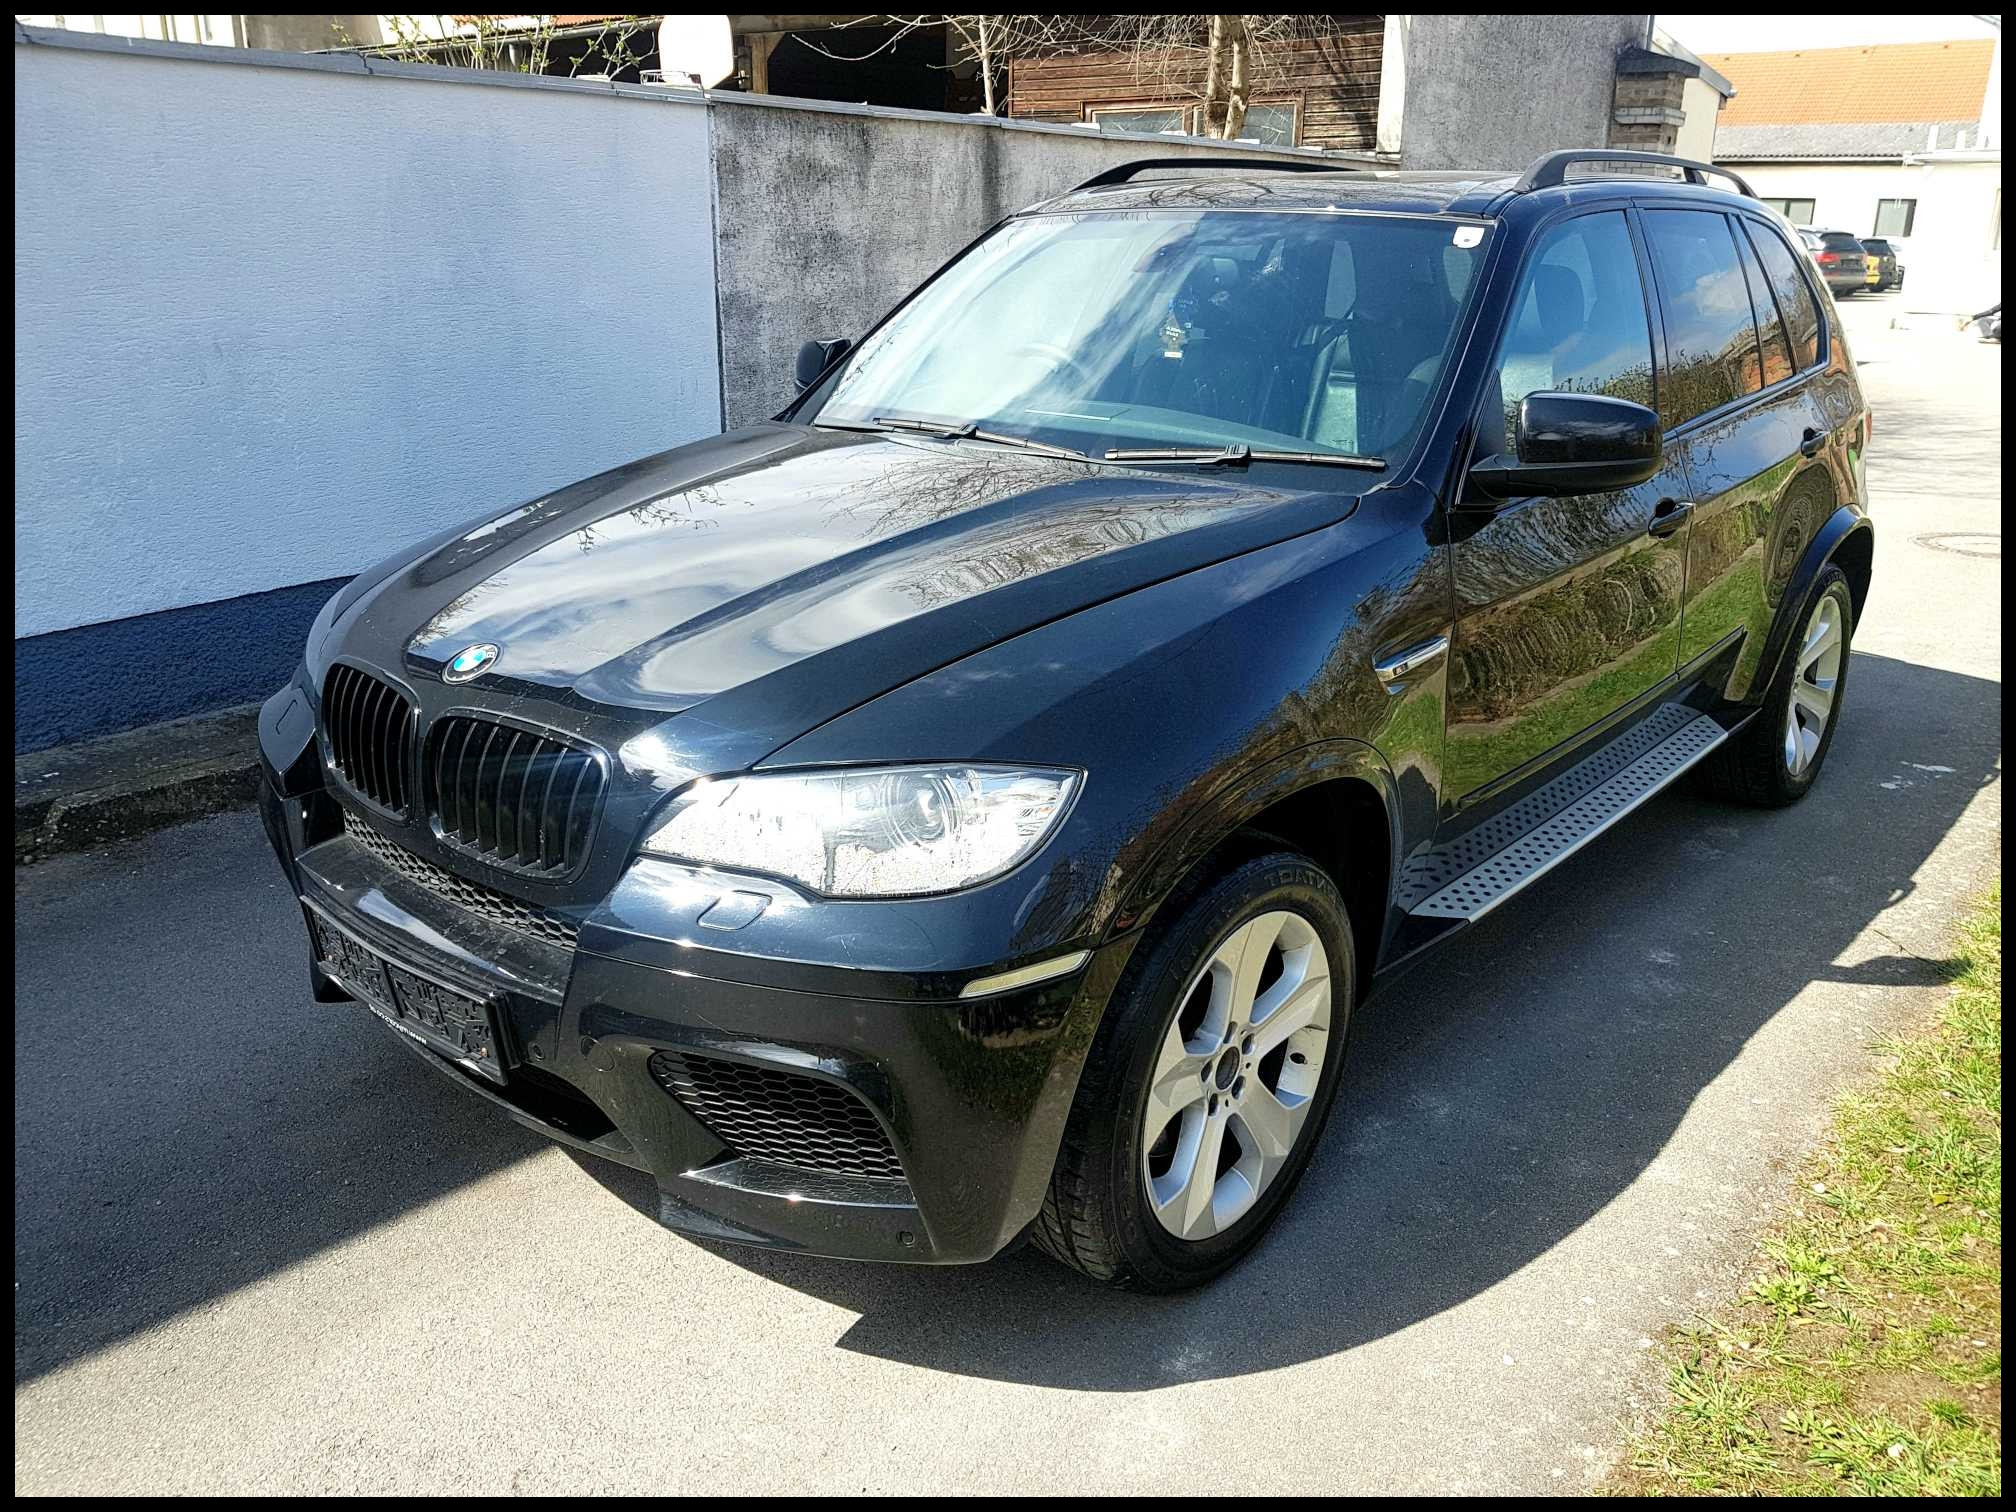 Used Bmw Suv X6 Awesome Short Information Cheap Used Cars In Evansville Indiana Used Bmw